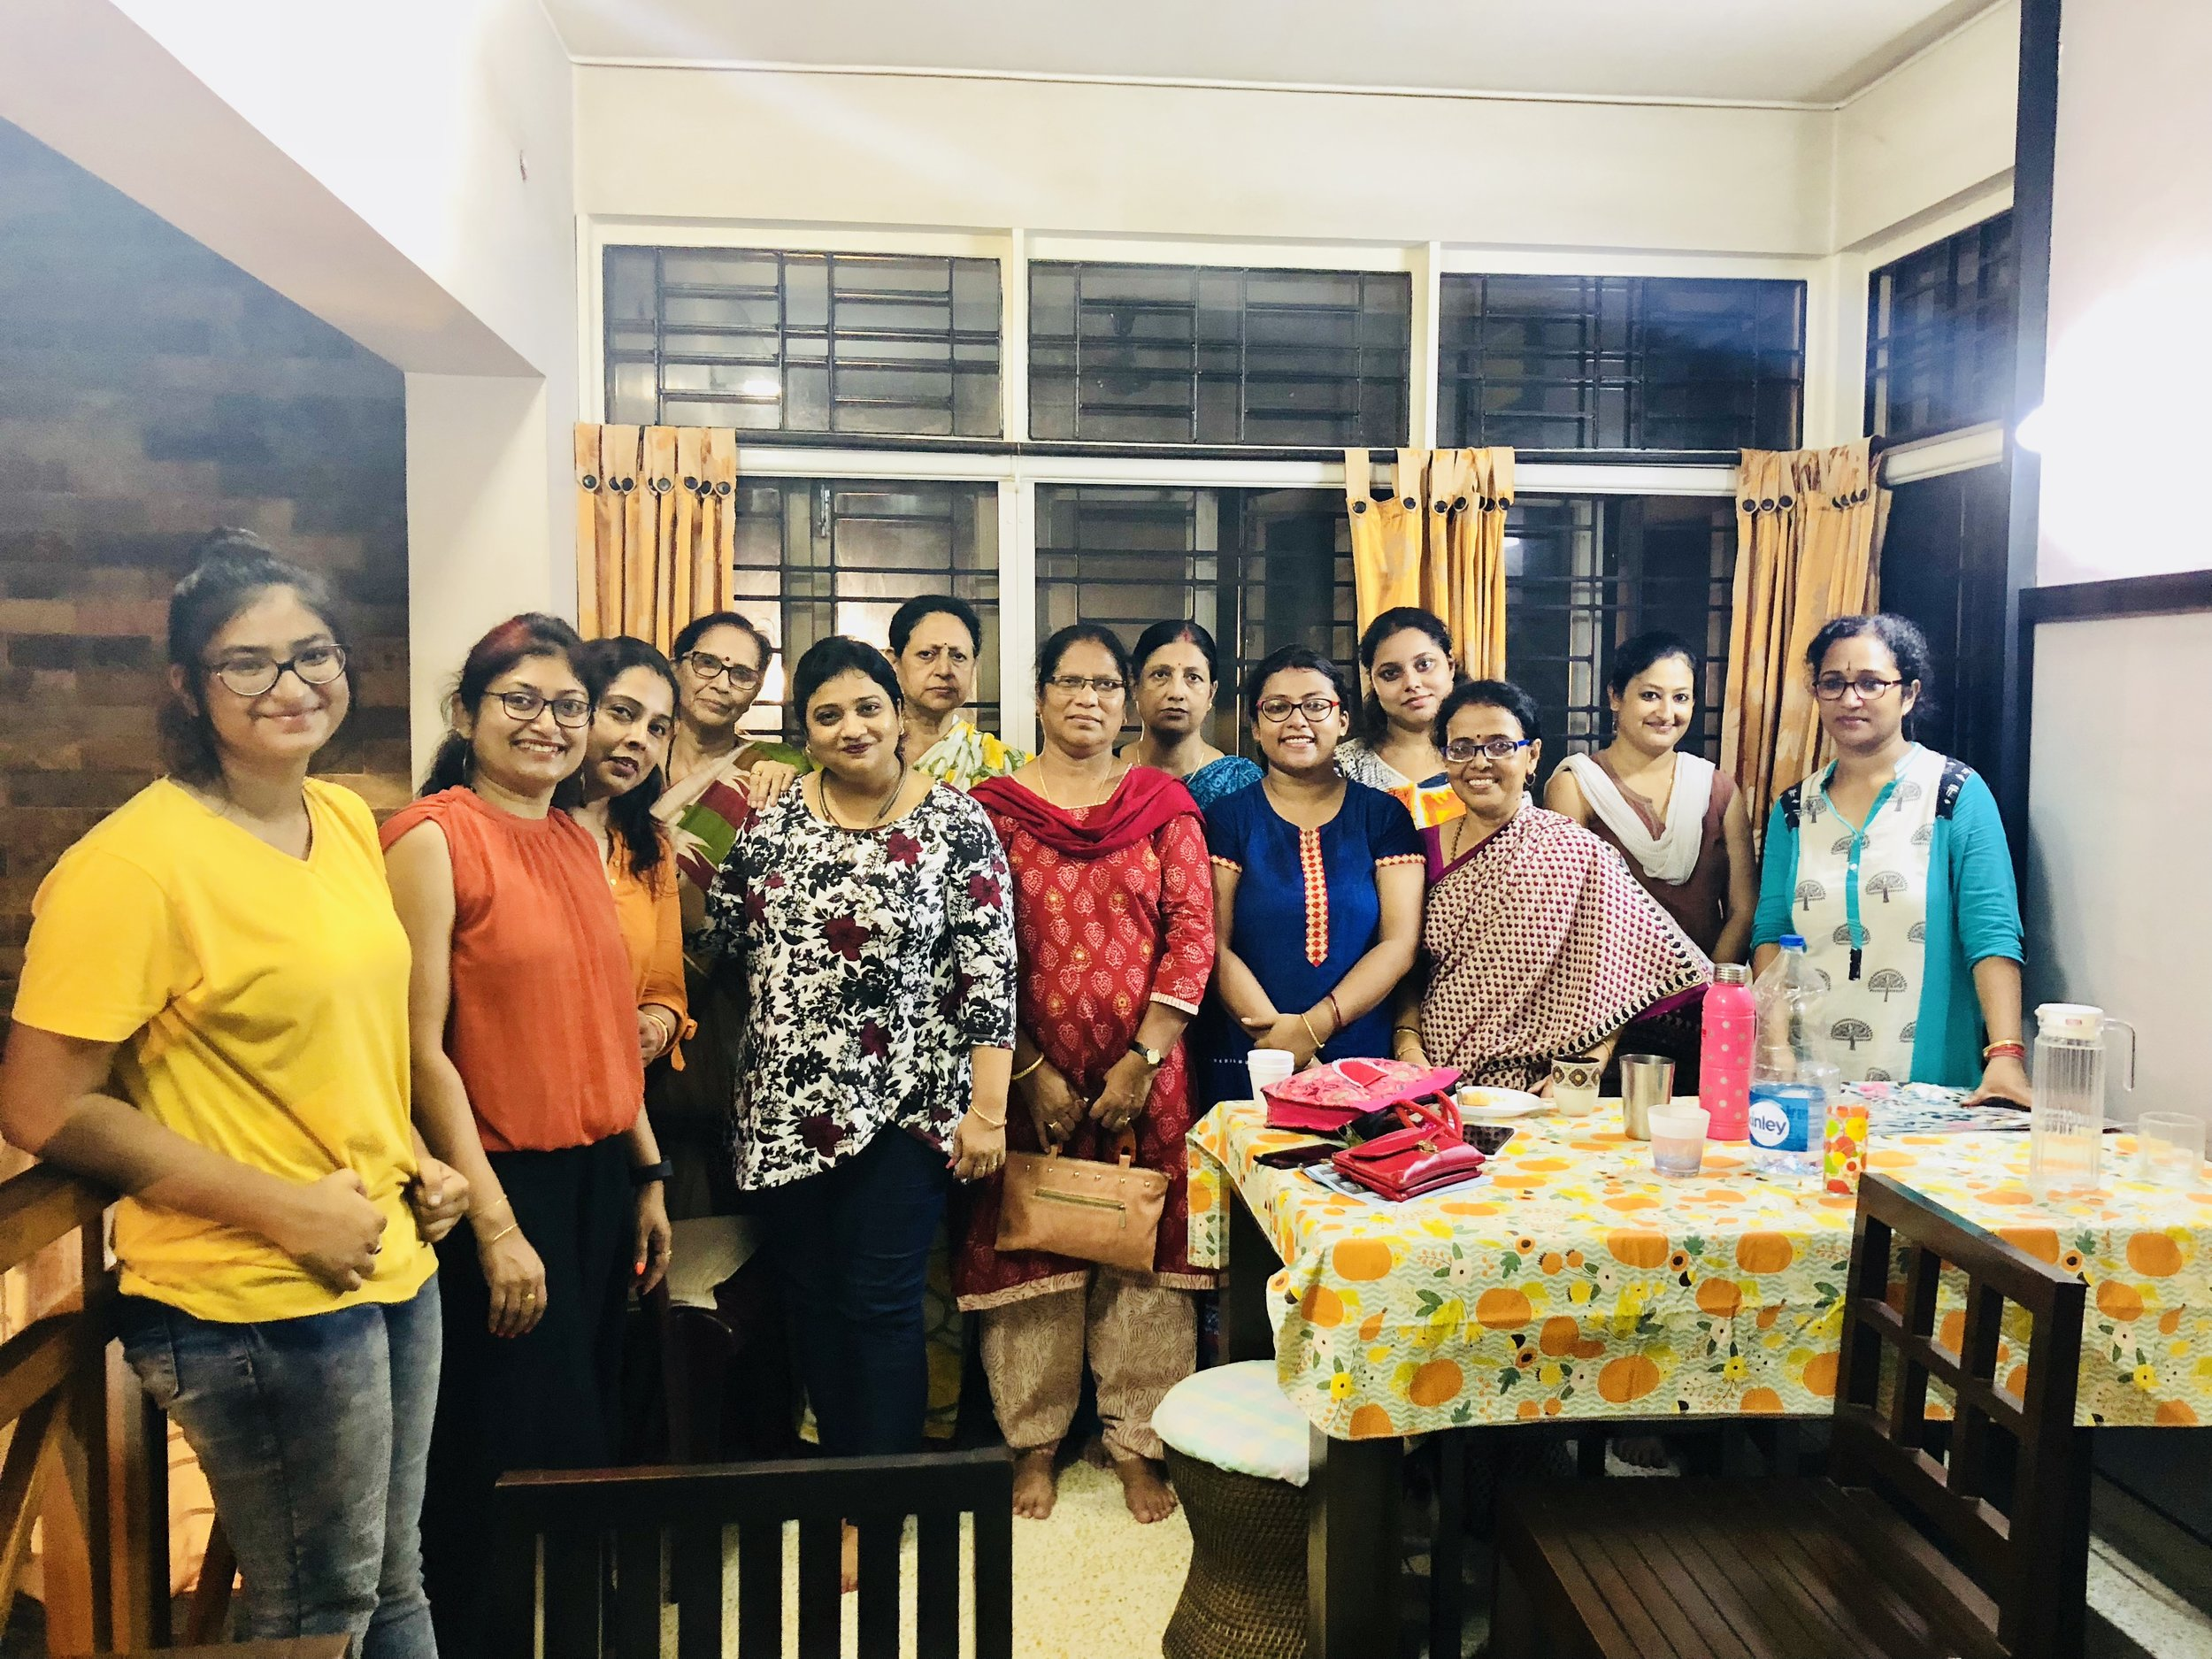 I would like to convey my heartfelt thanks to Mrs. Sandhya Das who organized the event in Kolkata at her residence. I met Mrs. Das in US at her daughter Dr. Manali Das's residence early this year and was sharing my work on Breast cancer awareness programs I was planning to conduct in India targeting embarrassment, taboo & ignorance. I was amazed to see the eagerness in Mrs. Das to help in spreading the word. Mrs. Das not only agreed to build the network but also organized the event in Kolkata, inviting her network of friends, family and neighbors. Hats off to Mrs. Das for her initiative and understanding the grimness of this disease. Thank you for your collaboration. I would also like to thank Mrs. Shompa and Mrs. Susmita Das for helping Mrs. Sandhya Das organize the event!